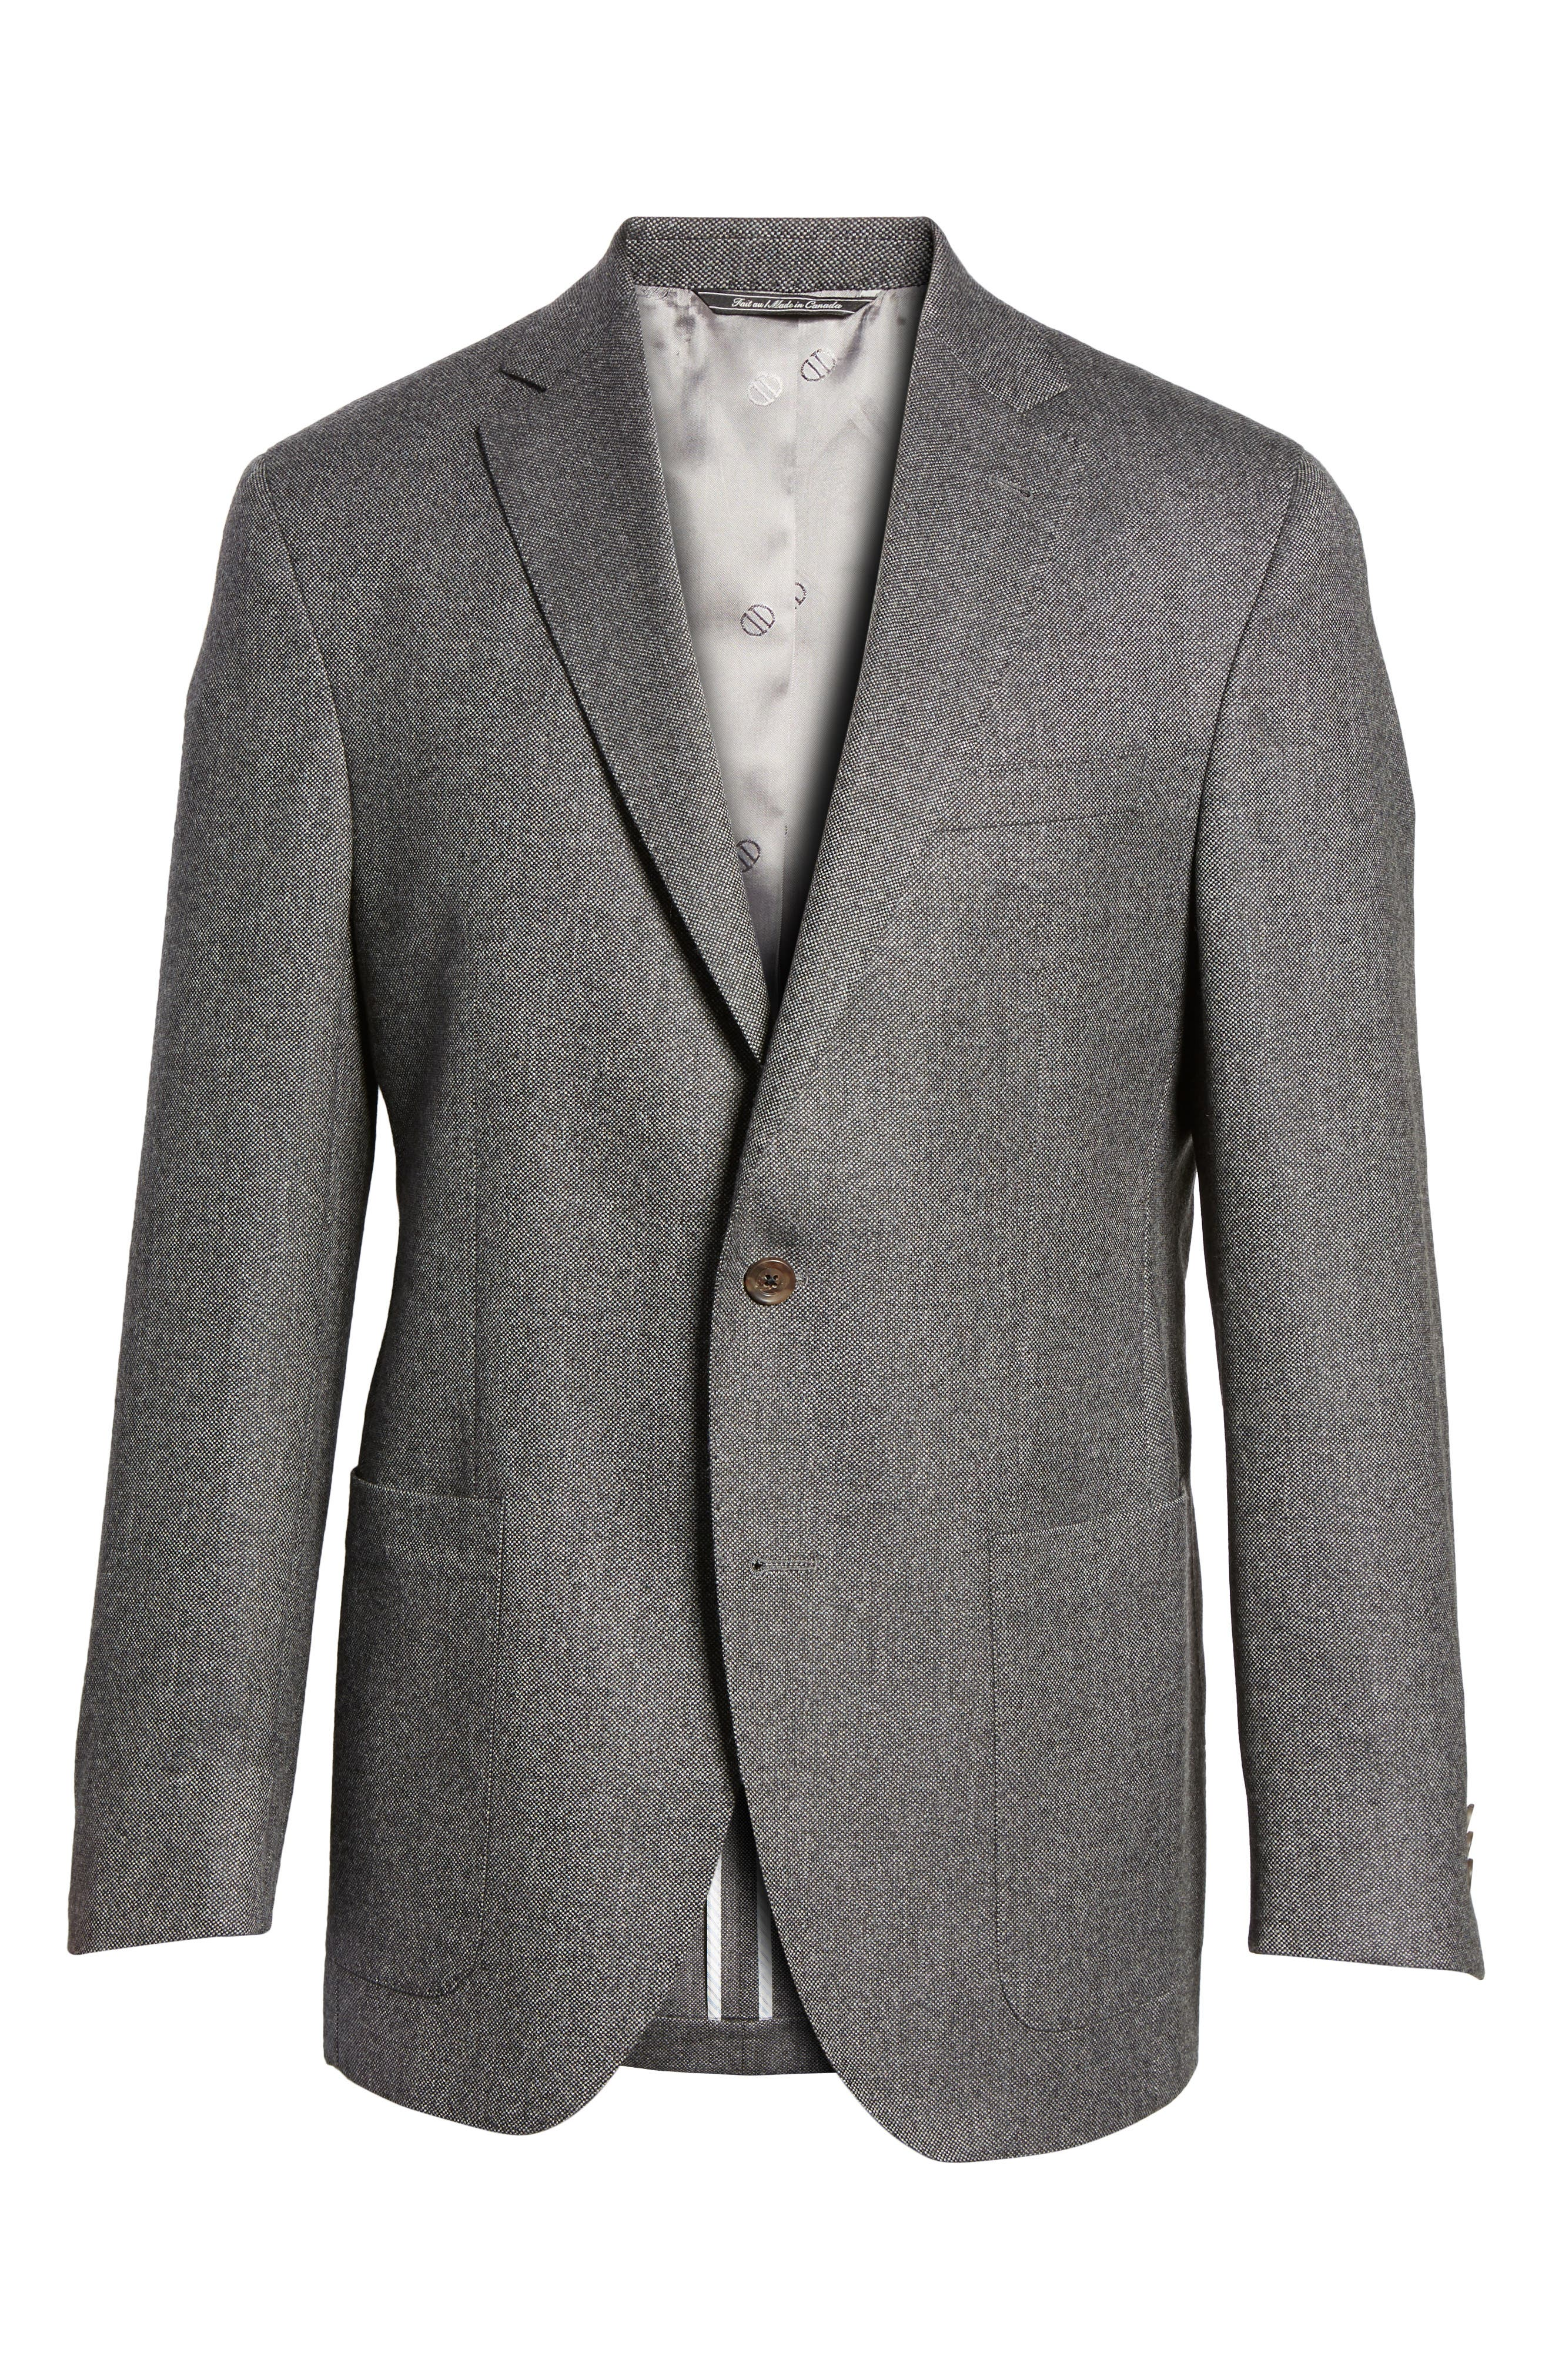 Aiden Classic Fit Wool Blazer,                             Alternate thumbnail 5, color,                             020